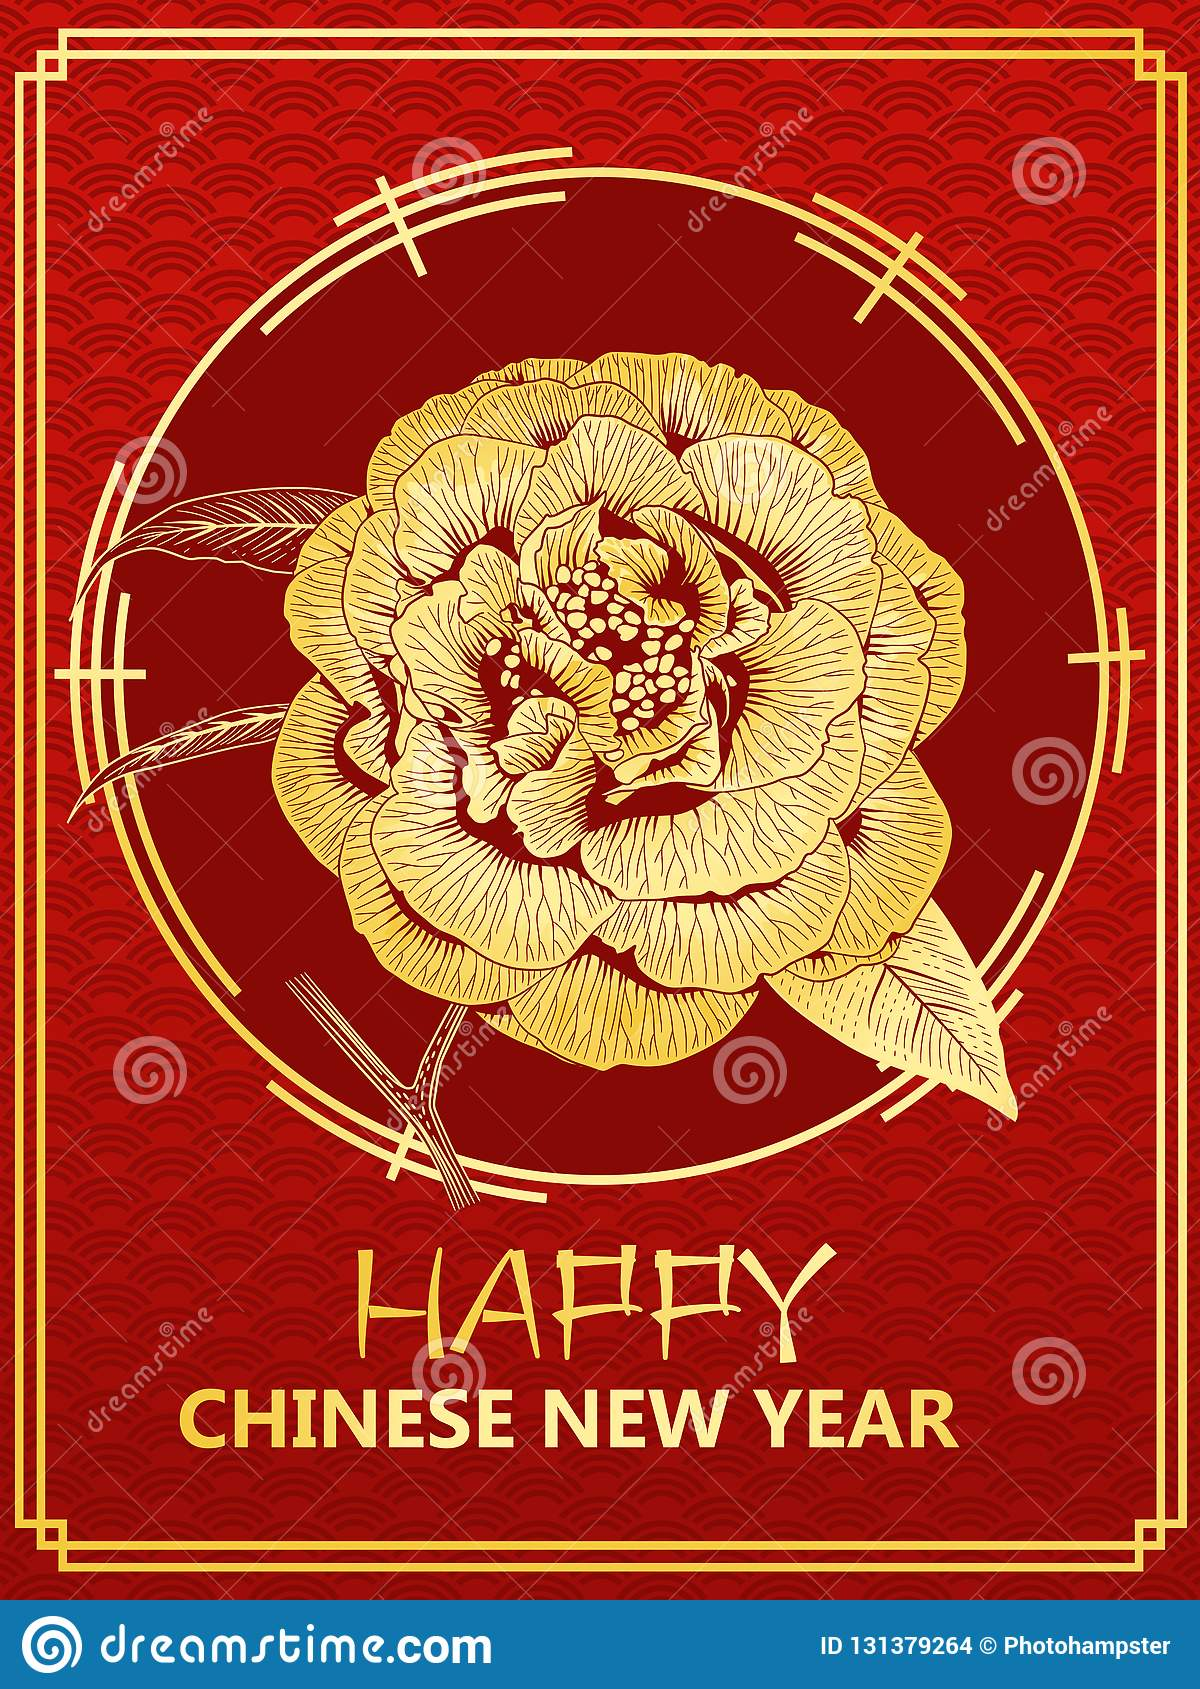 Chinese New Year Gift Card With Golden Peony Form Camellia ...